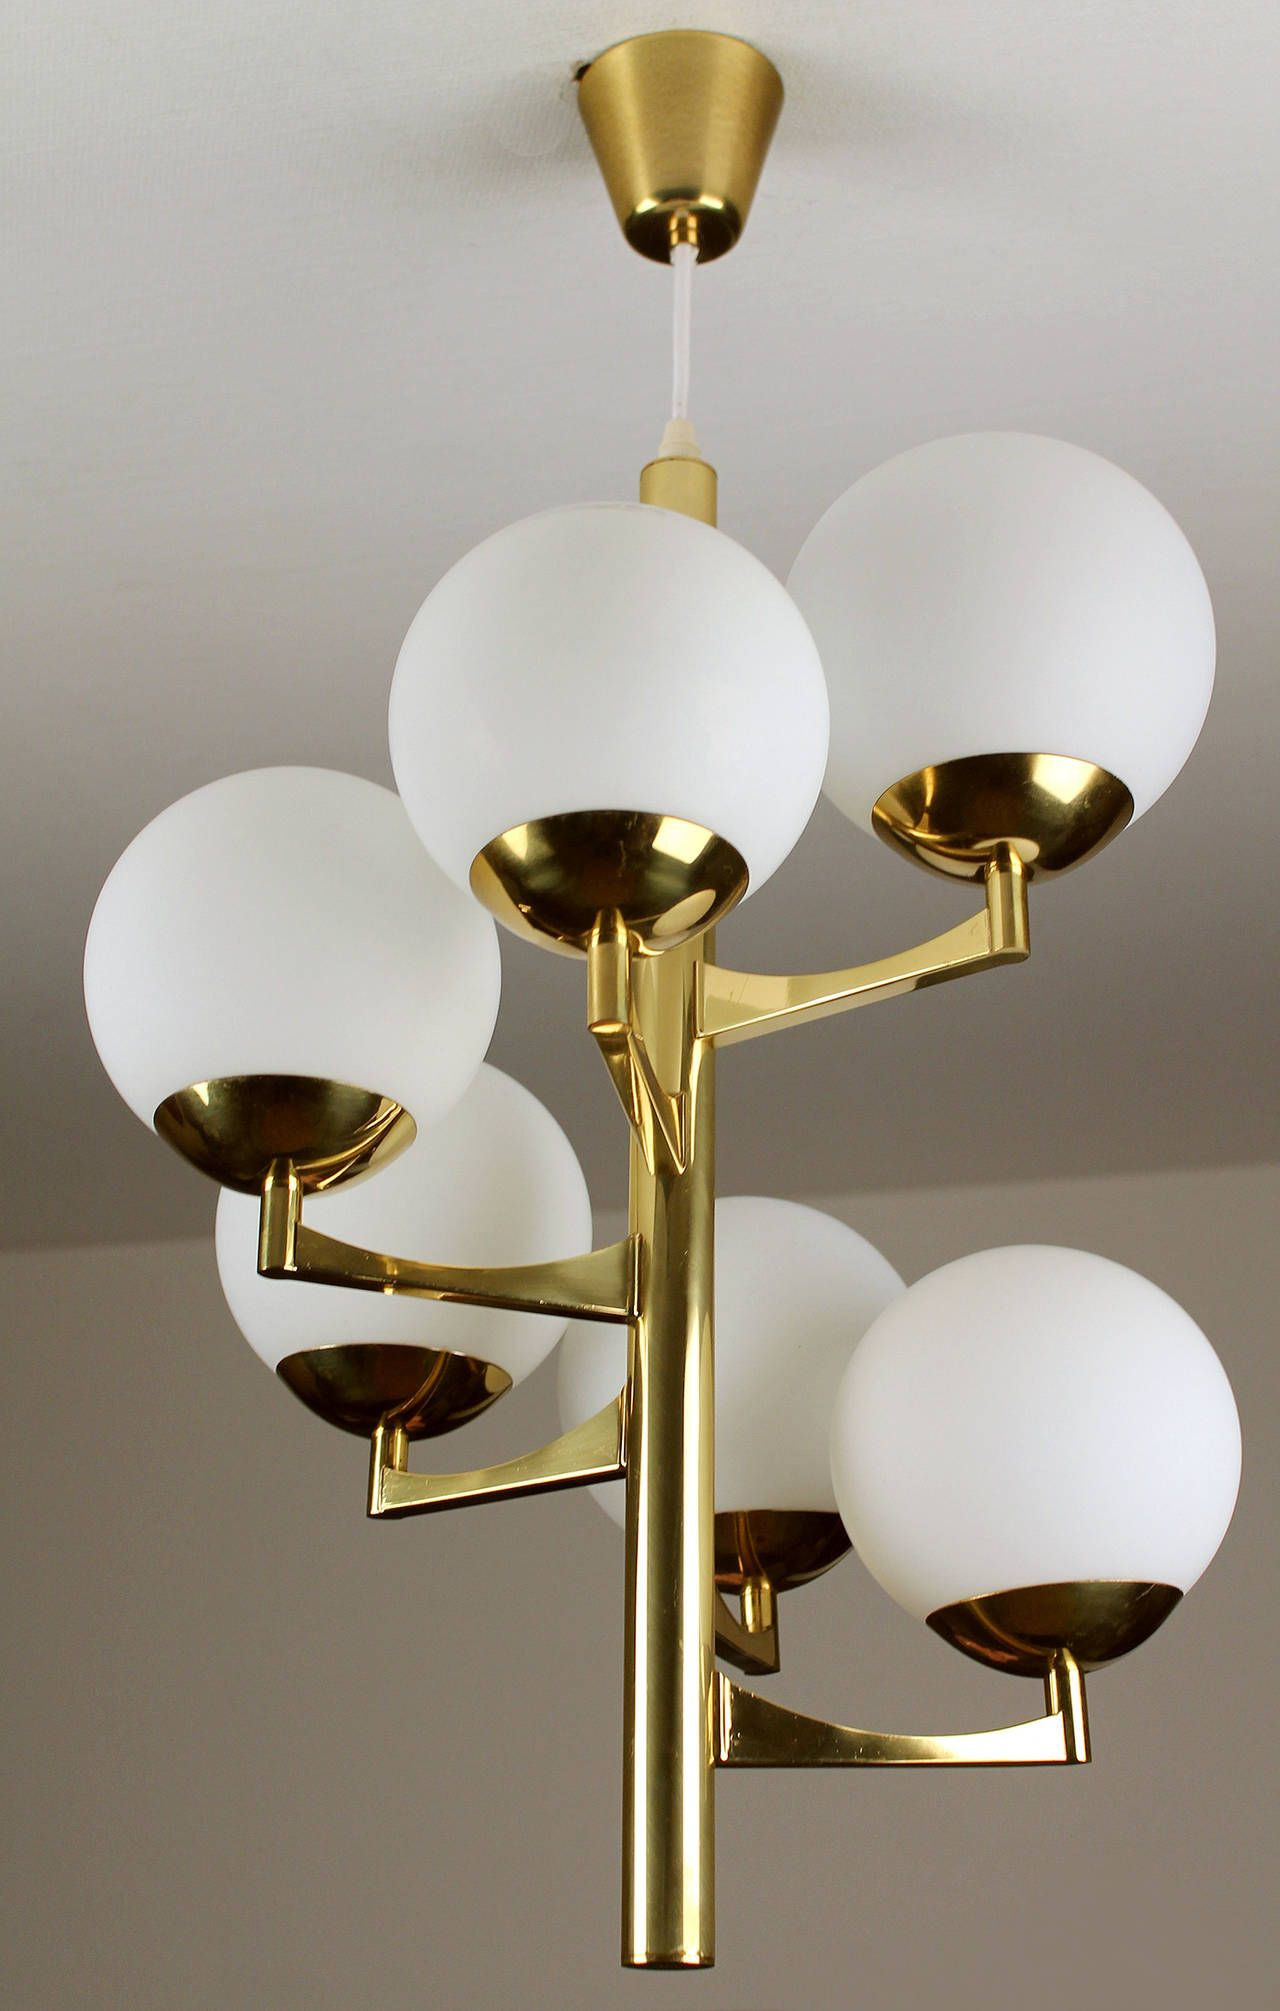 Modern lighting lamps. Kind view of lampata 83